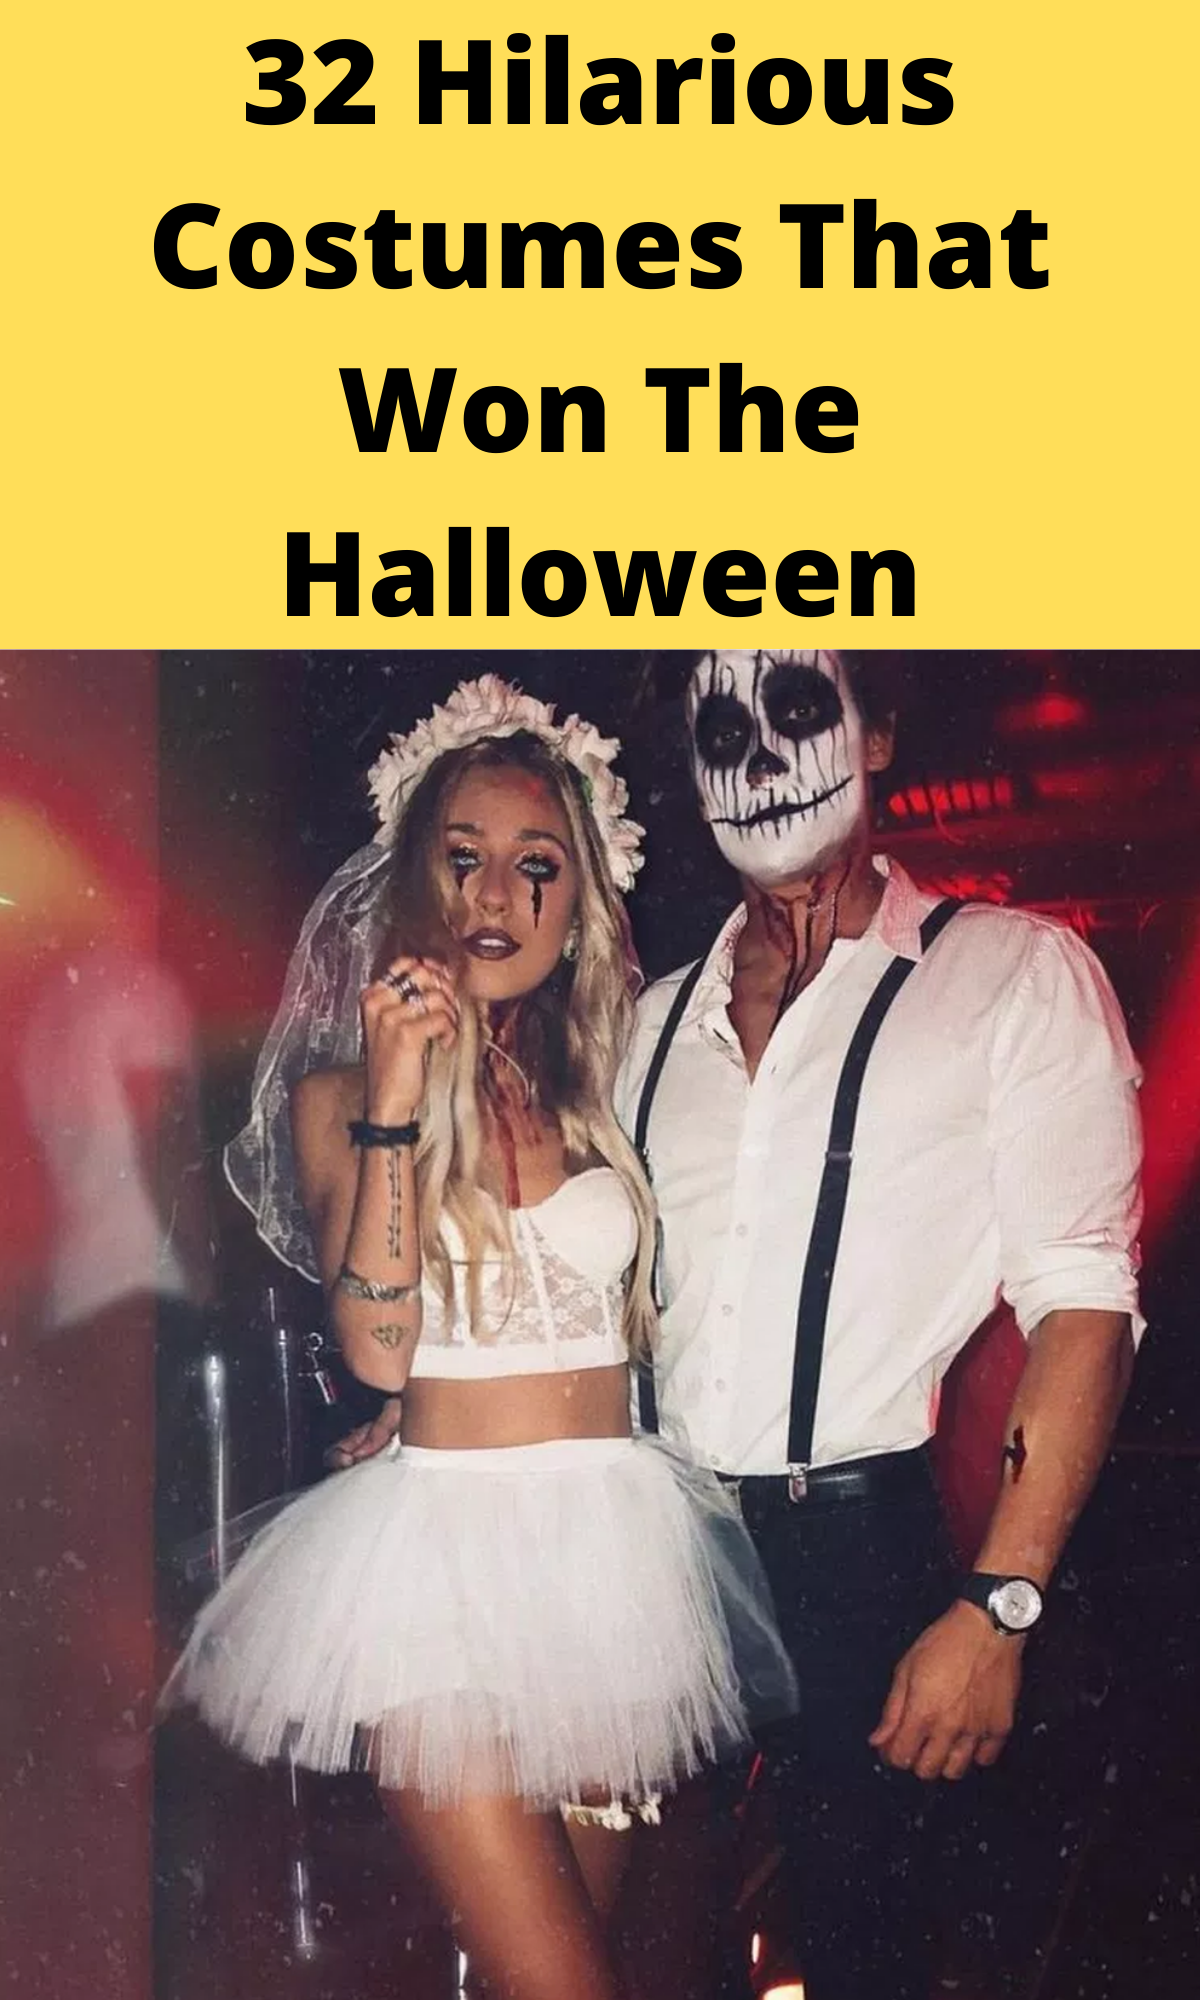 Halloween 2020 Fail 32 Hilarious Costumes That Won The Halloween in 2020 | Epic fails